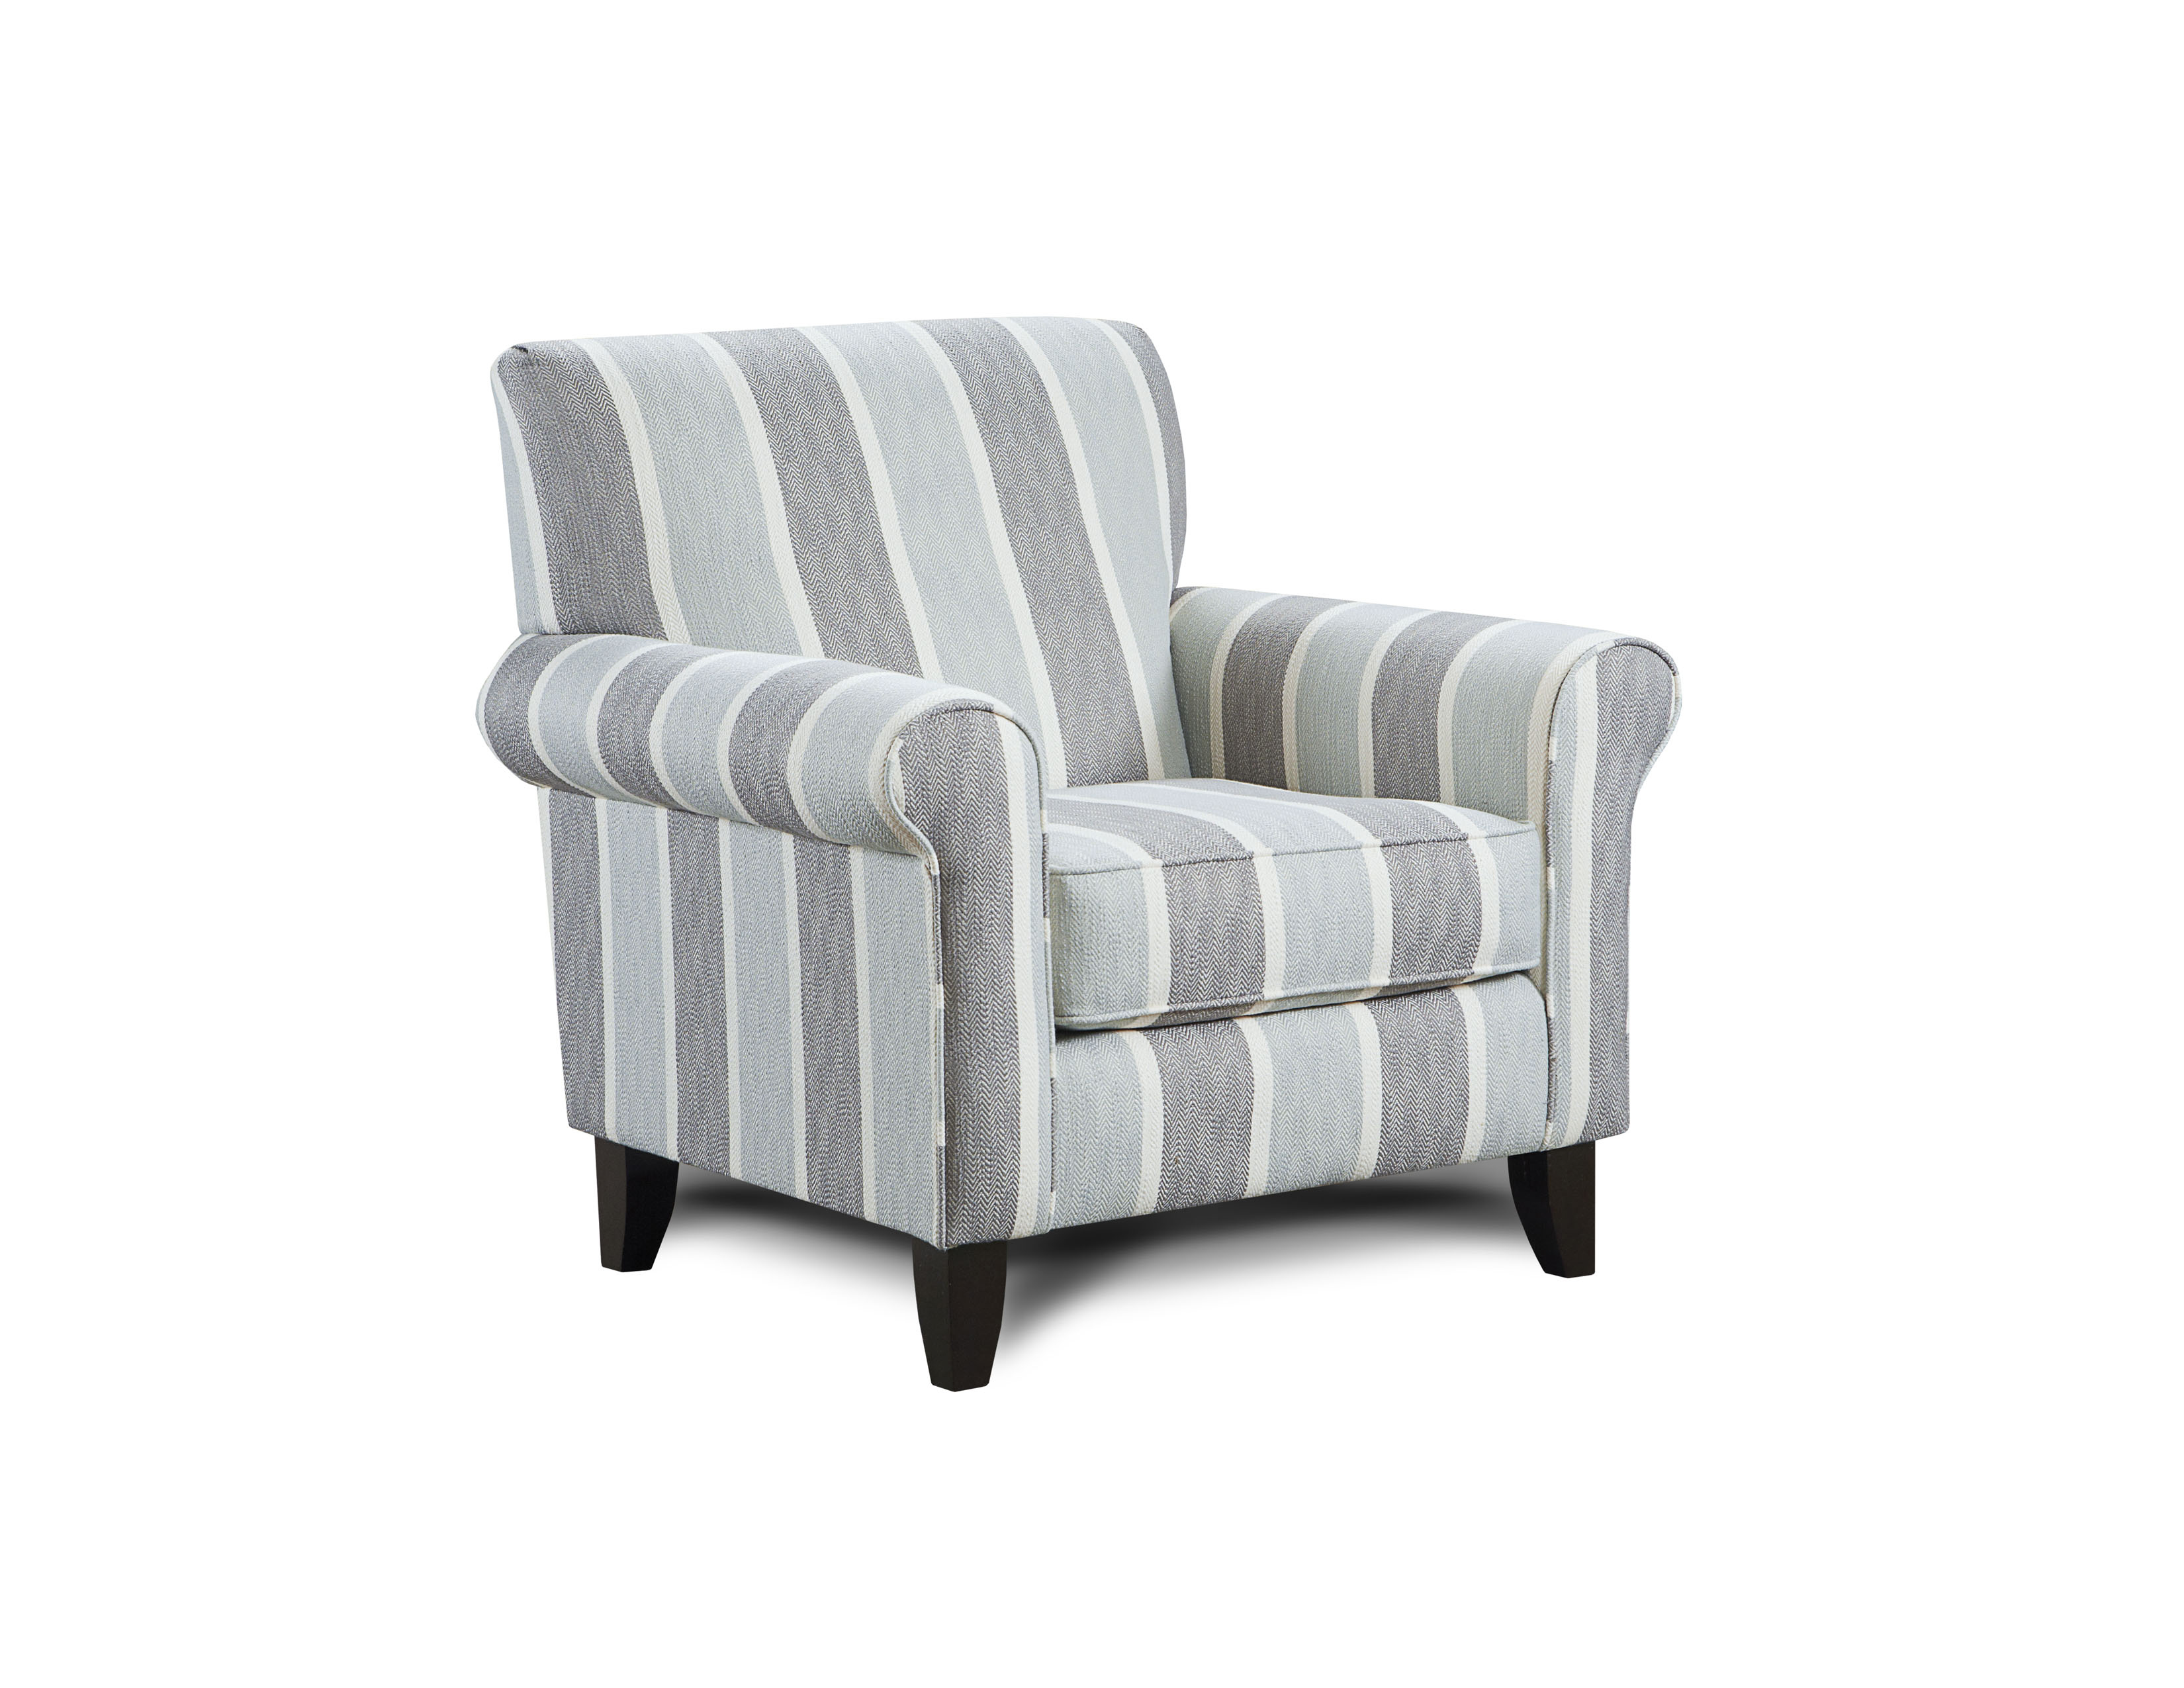 Life's a Beach Fusion Furniture chair, Grande Mist collection